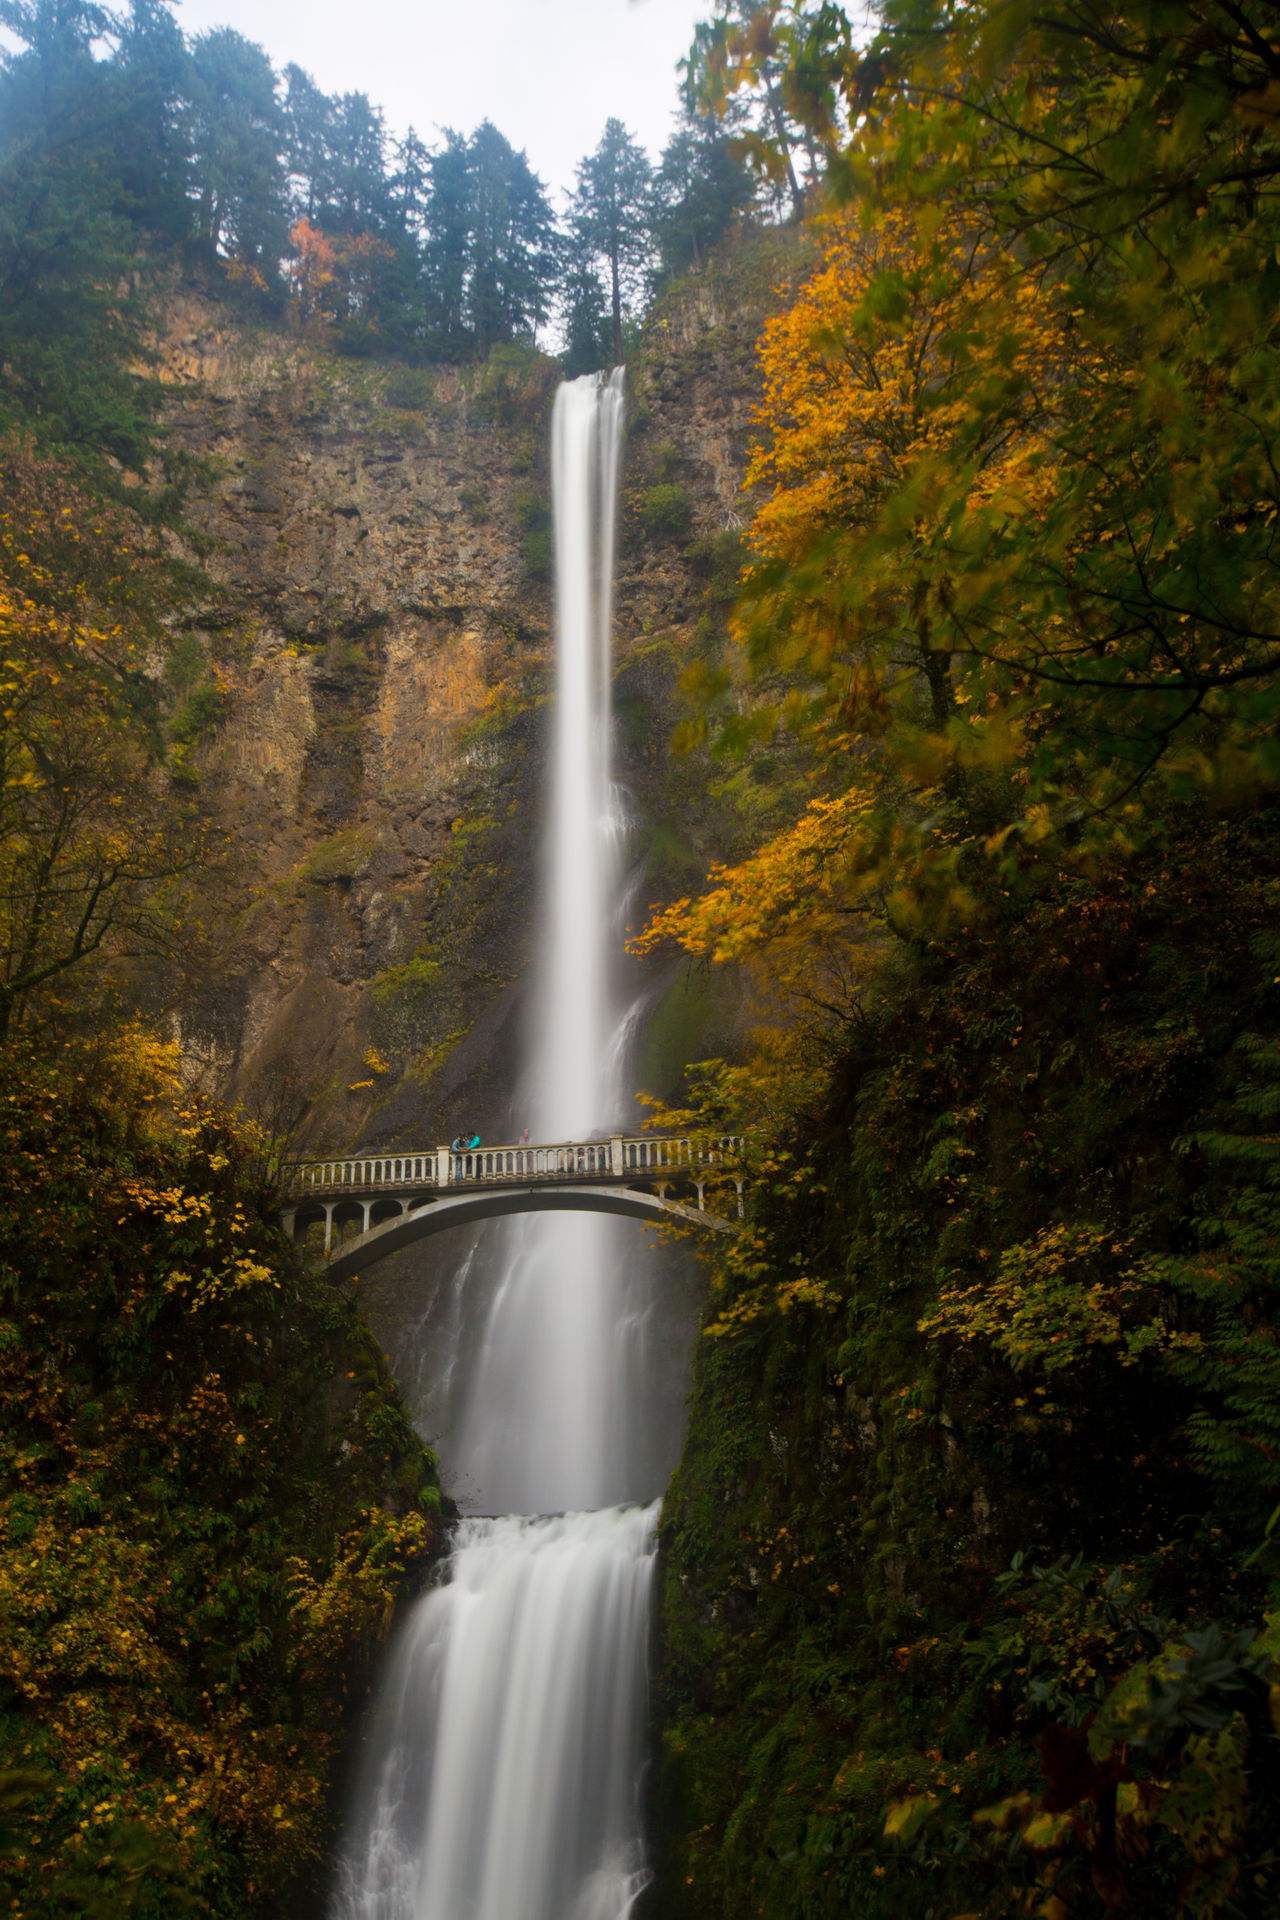 Autumn Beauty In Nature Multnomah Falls  Multnomah Falls Oregon Oregon Oregonexplored Waterfall